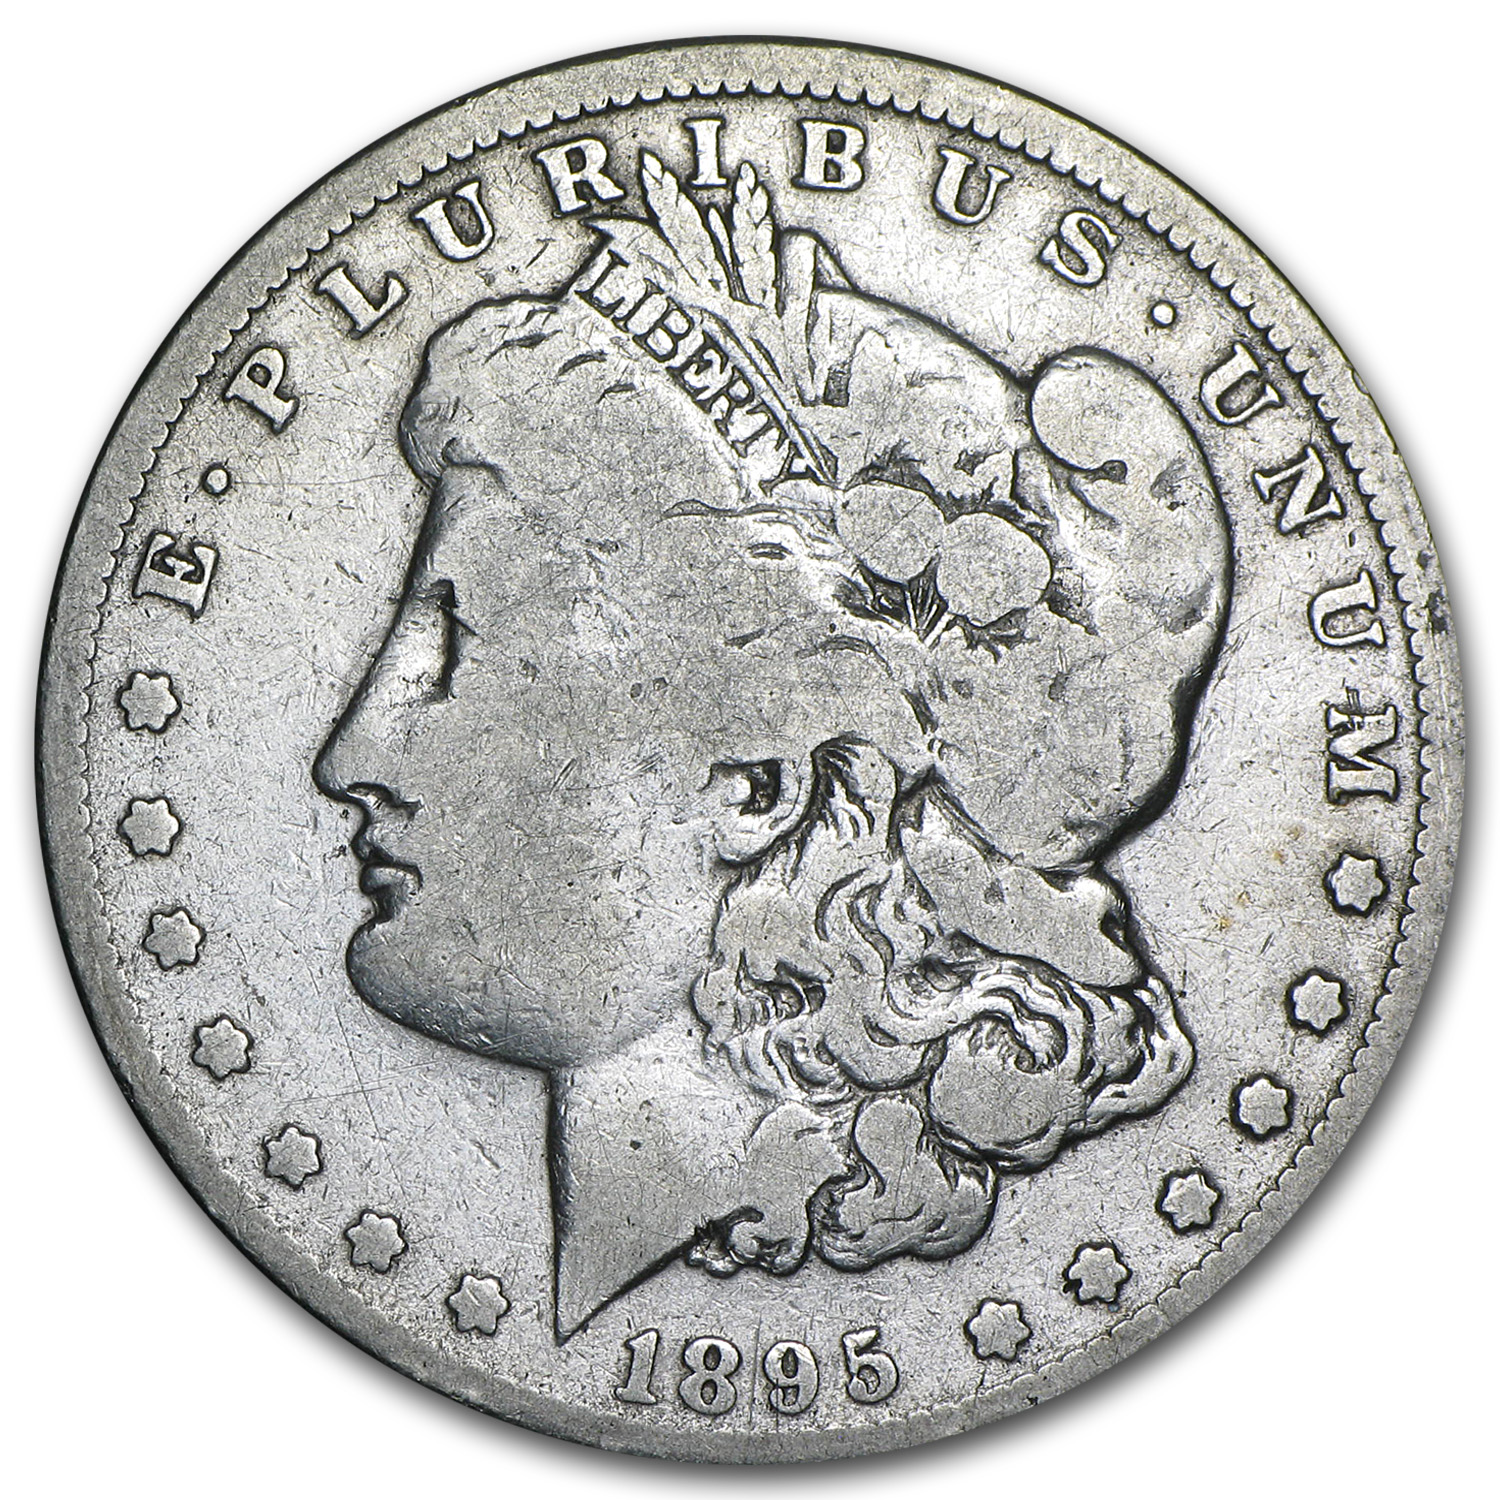 1895-O Morgan Dollar - Very Good